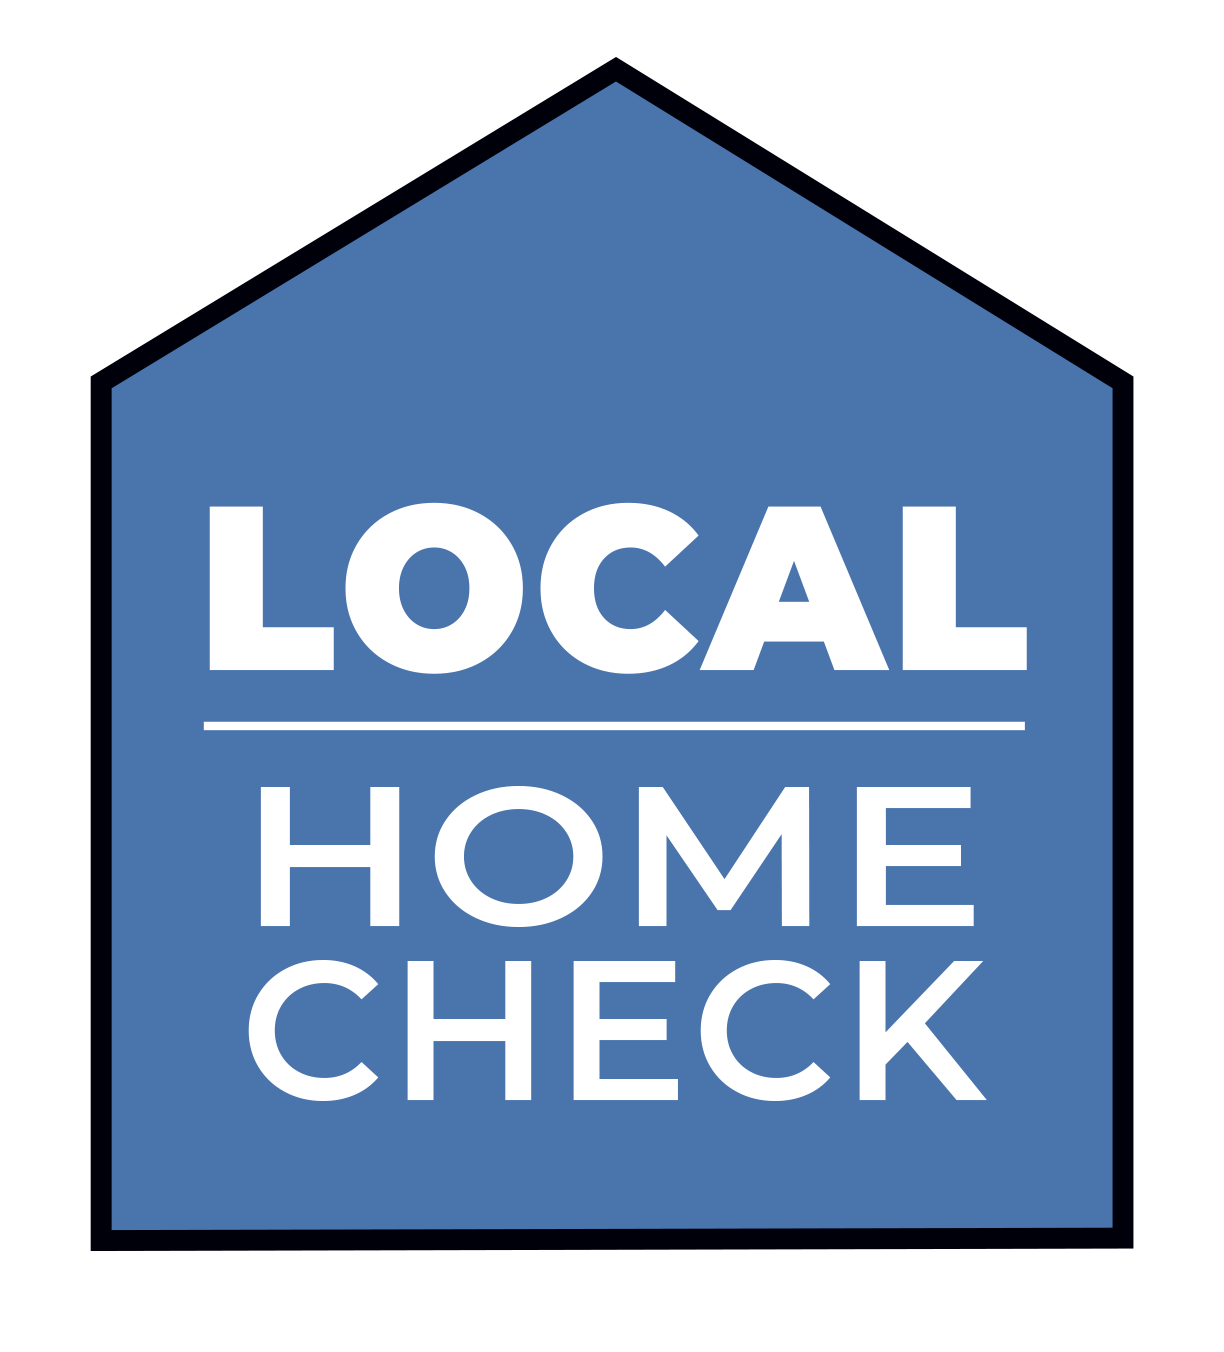 Local Home Check